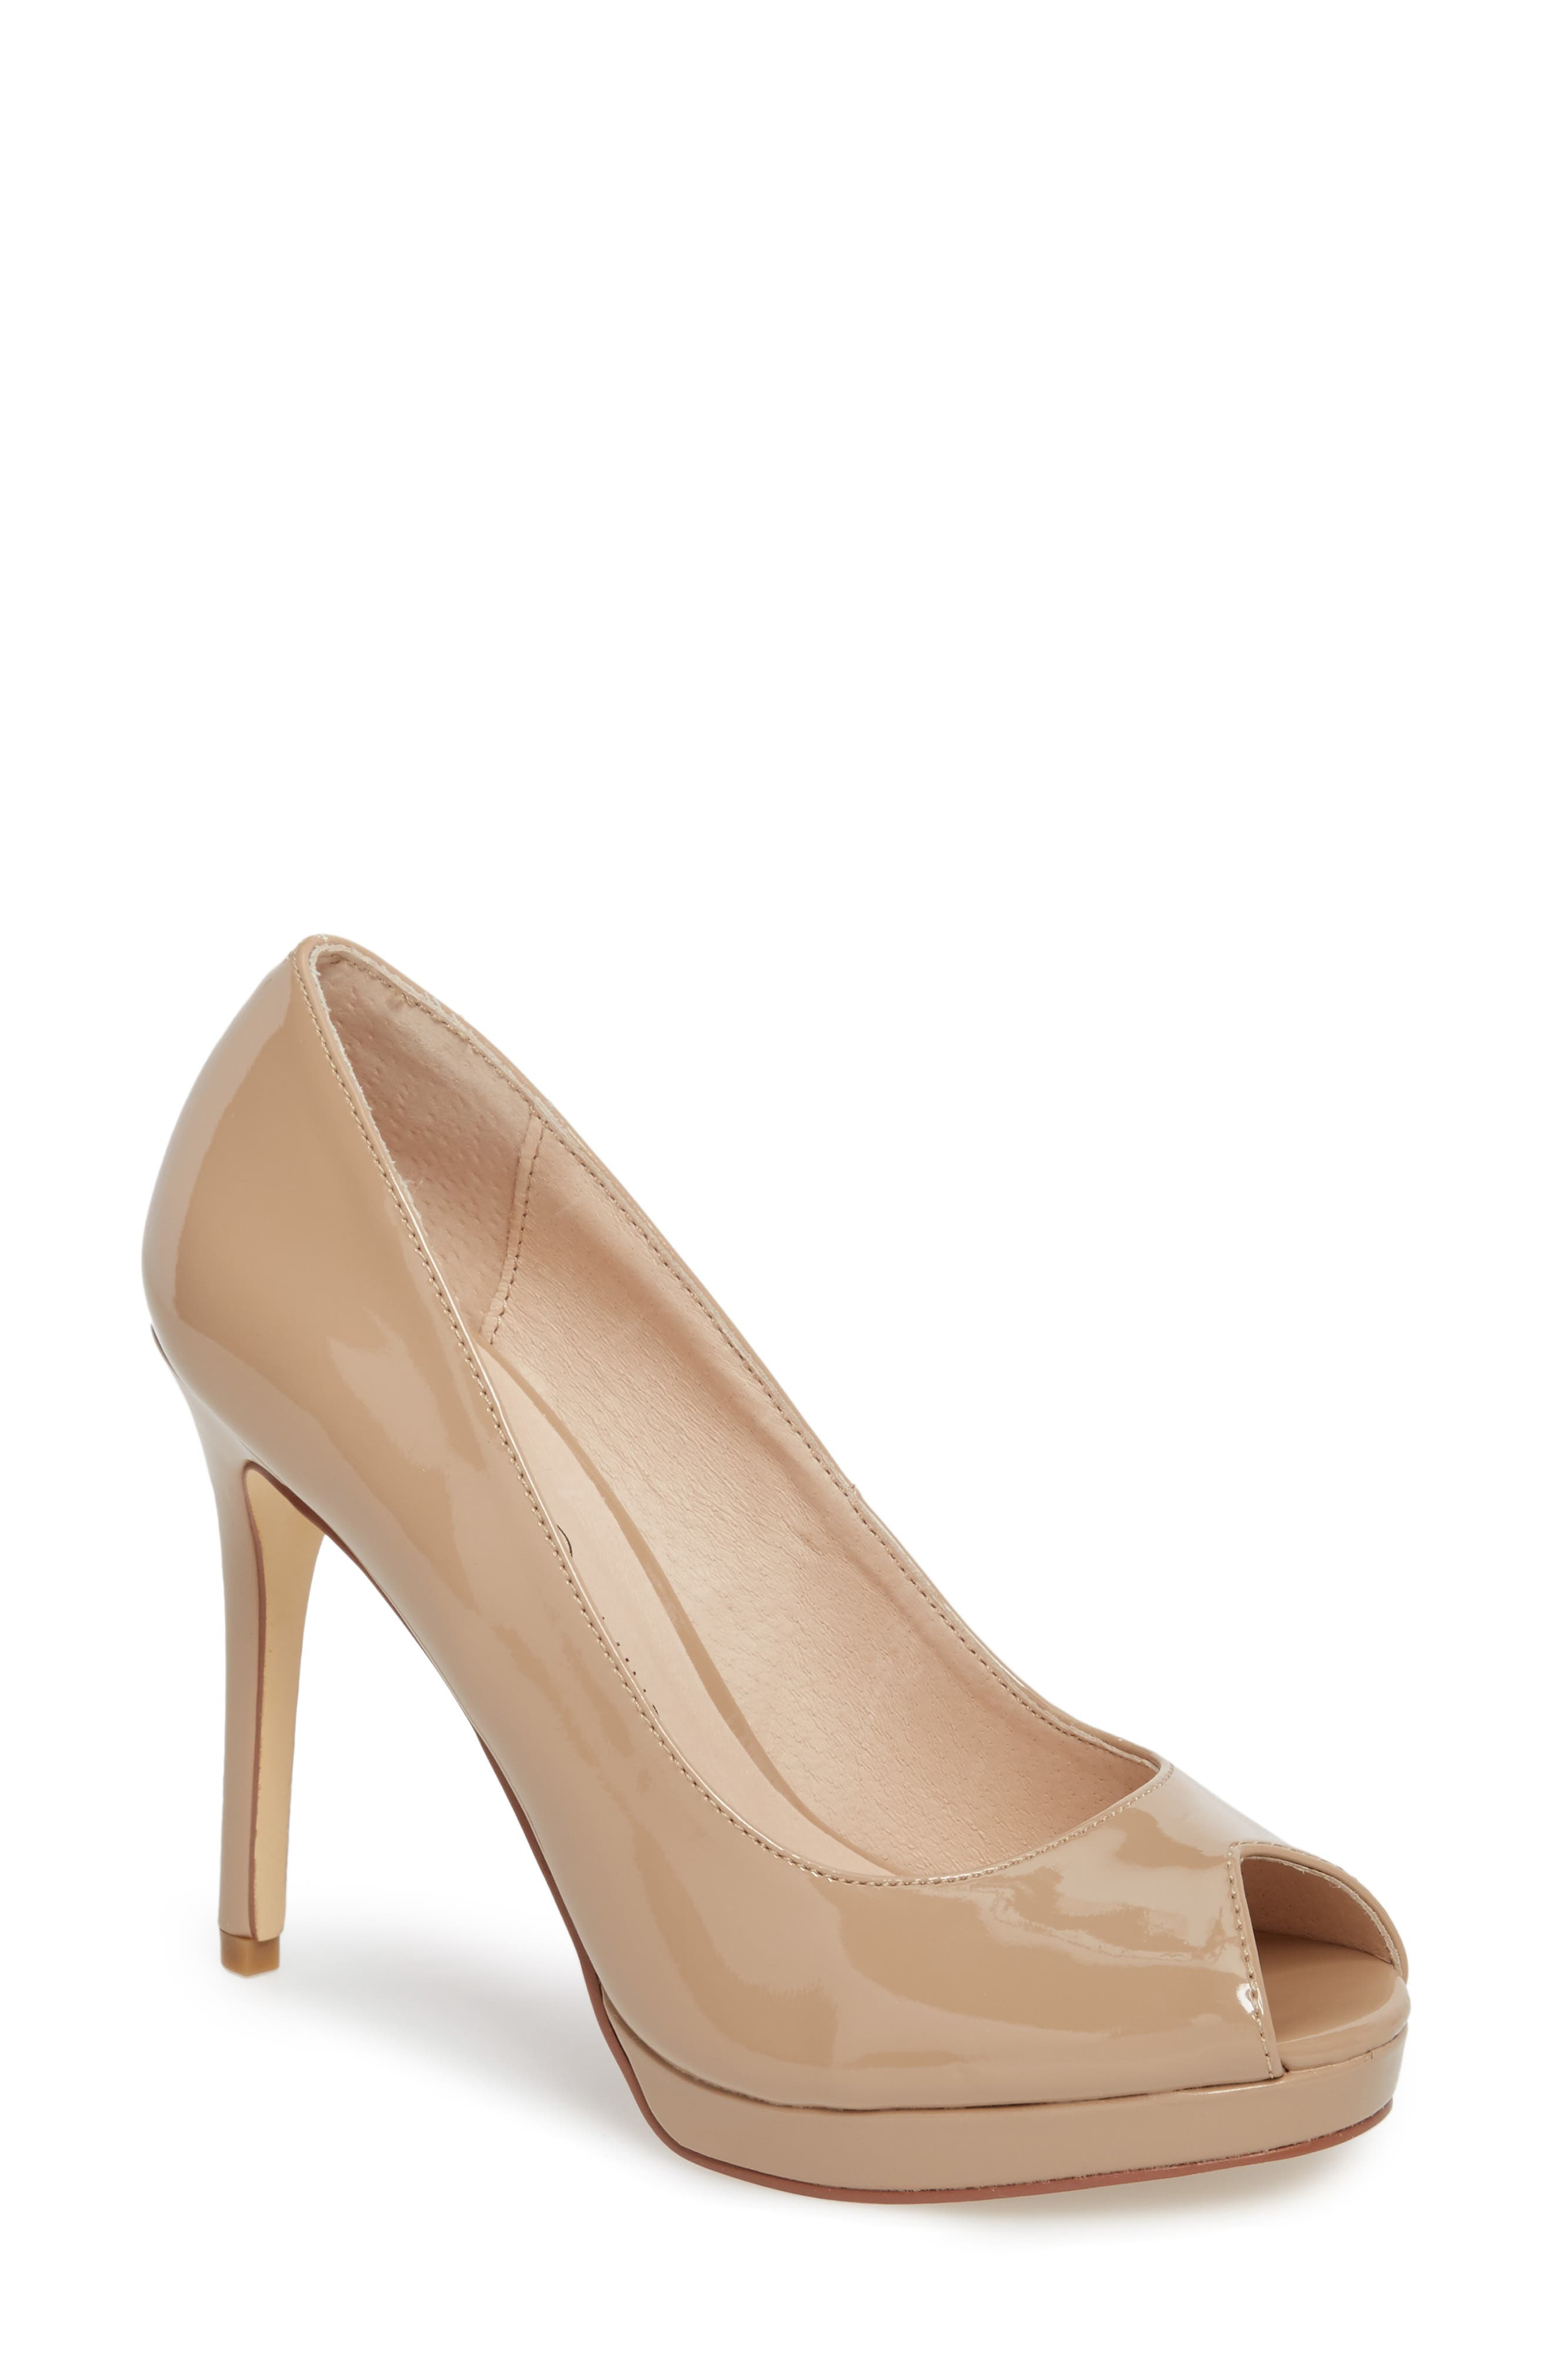 Fia Peep Toe Pump,                         Main,                         color, Nude Patent